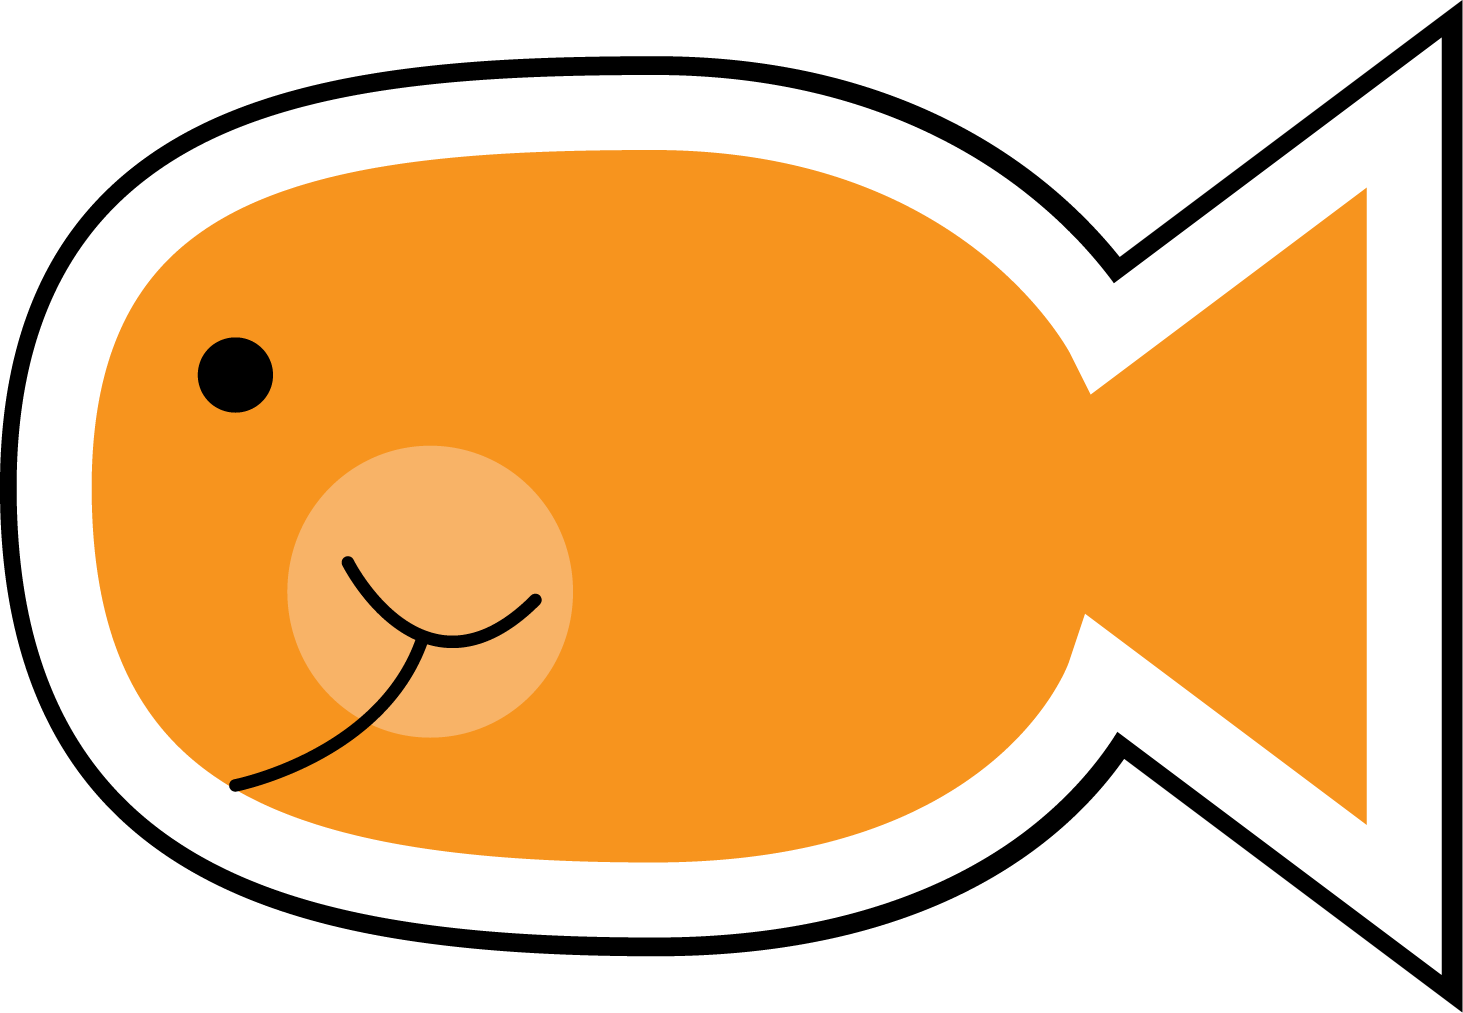 fish clipart drawing - photo #21